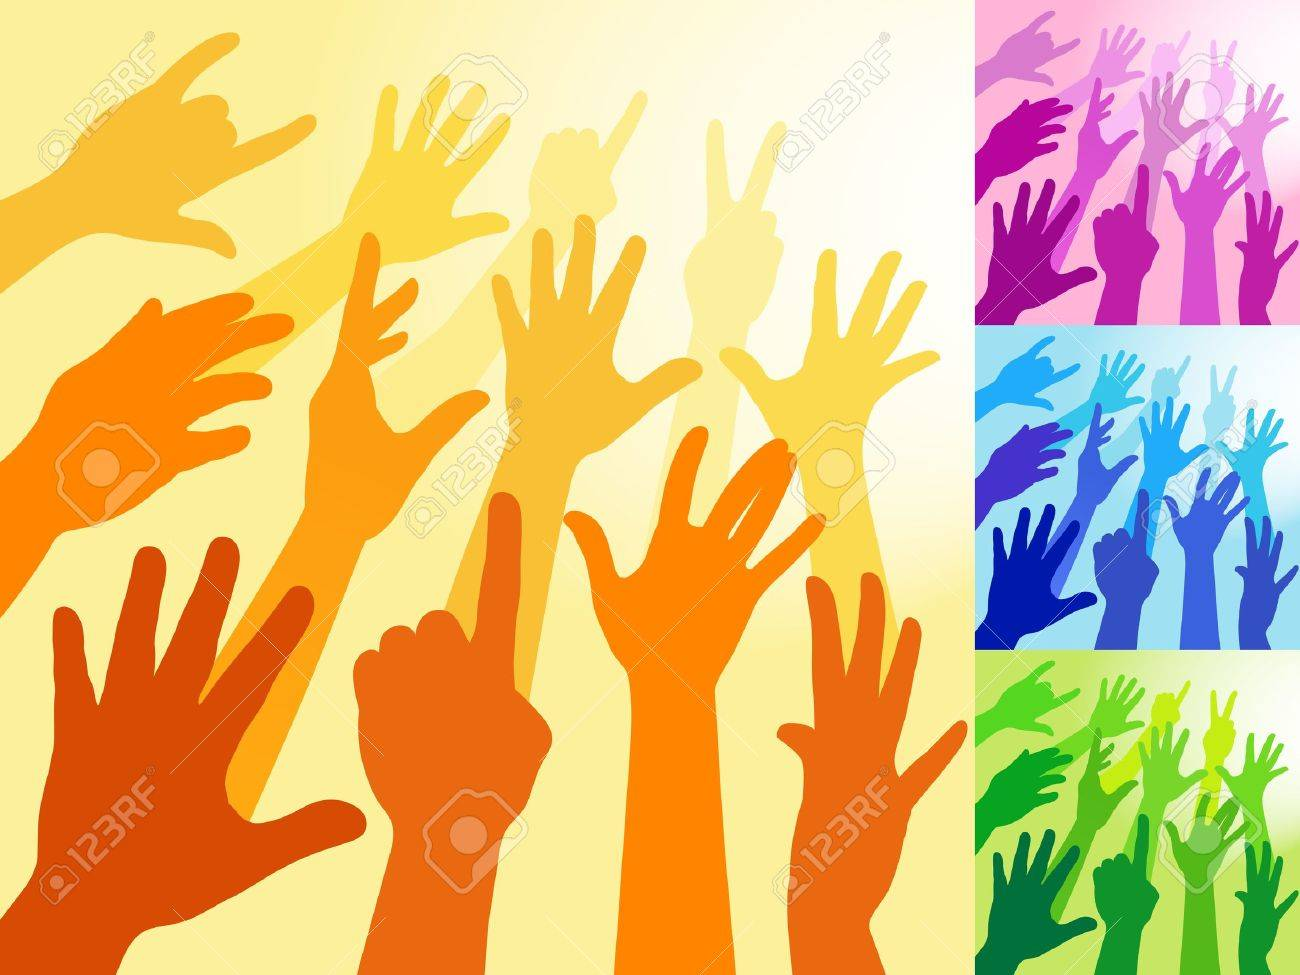 A collection of hands and raised arms shapes Stock Vector - 10519058